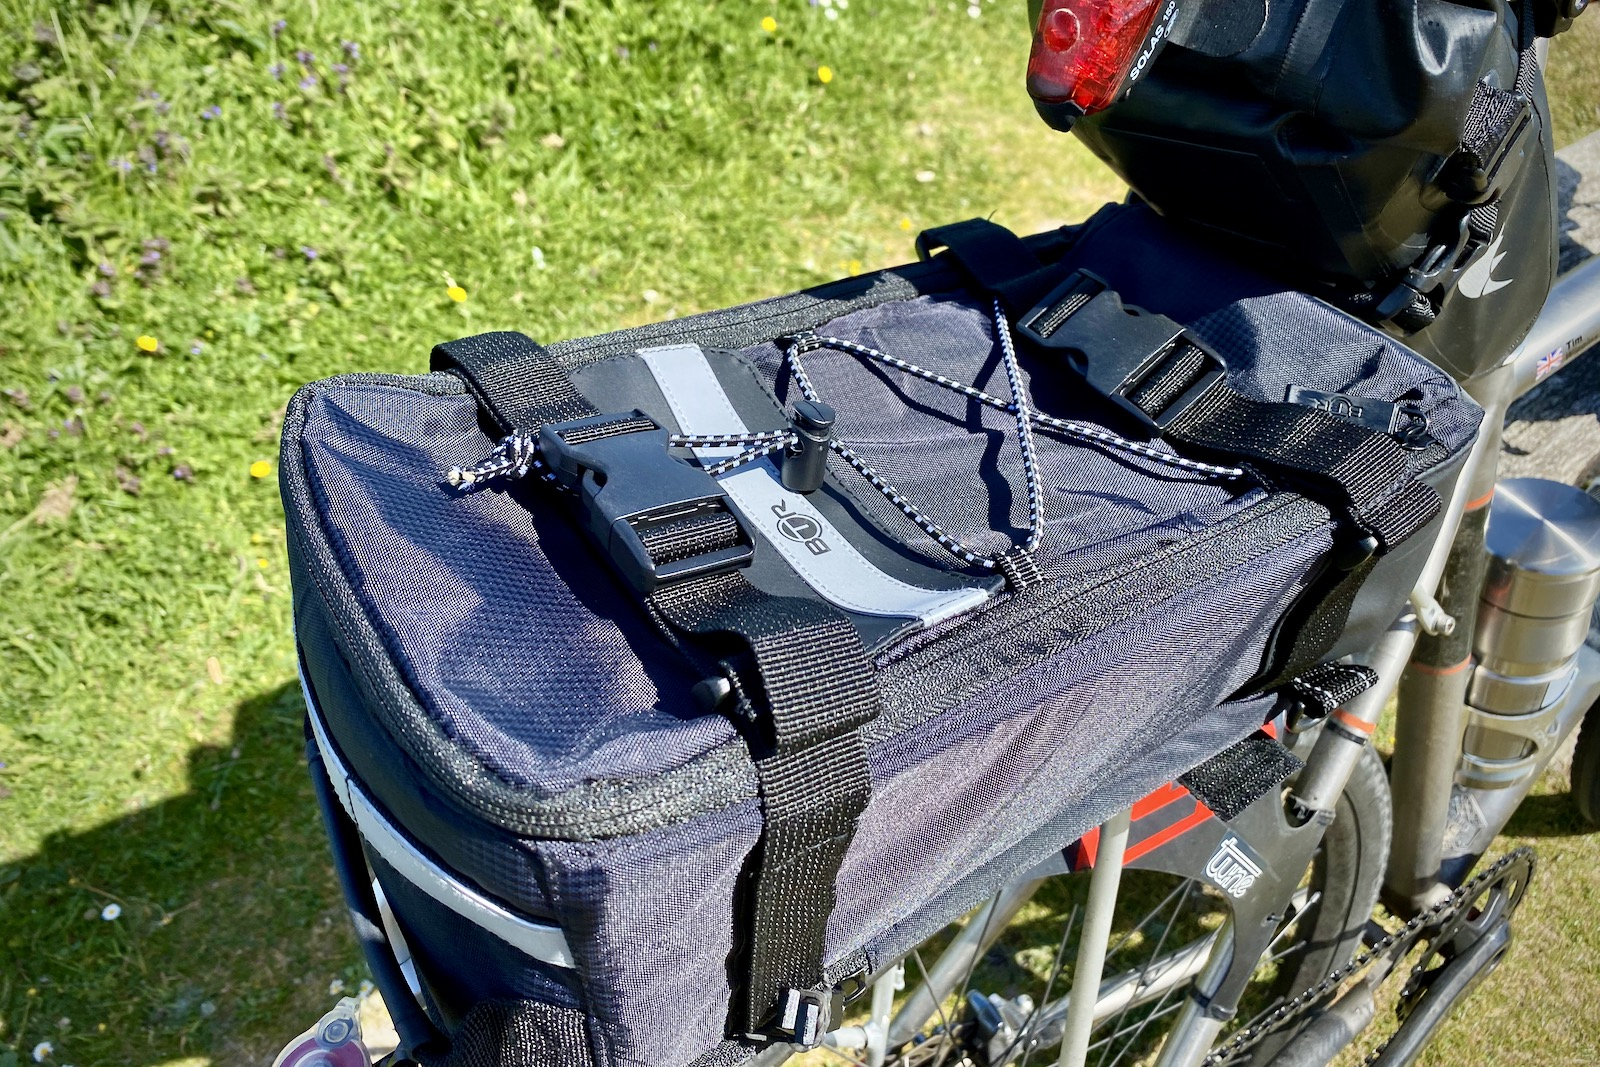 BTR Deluxe Rack Top Bicycle Pannier Bag Review